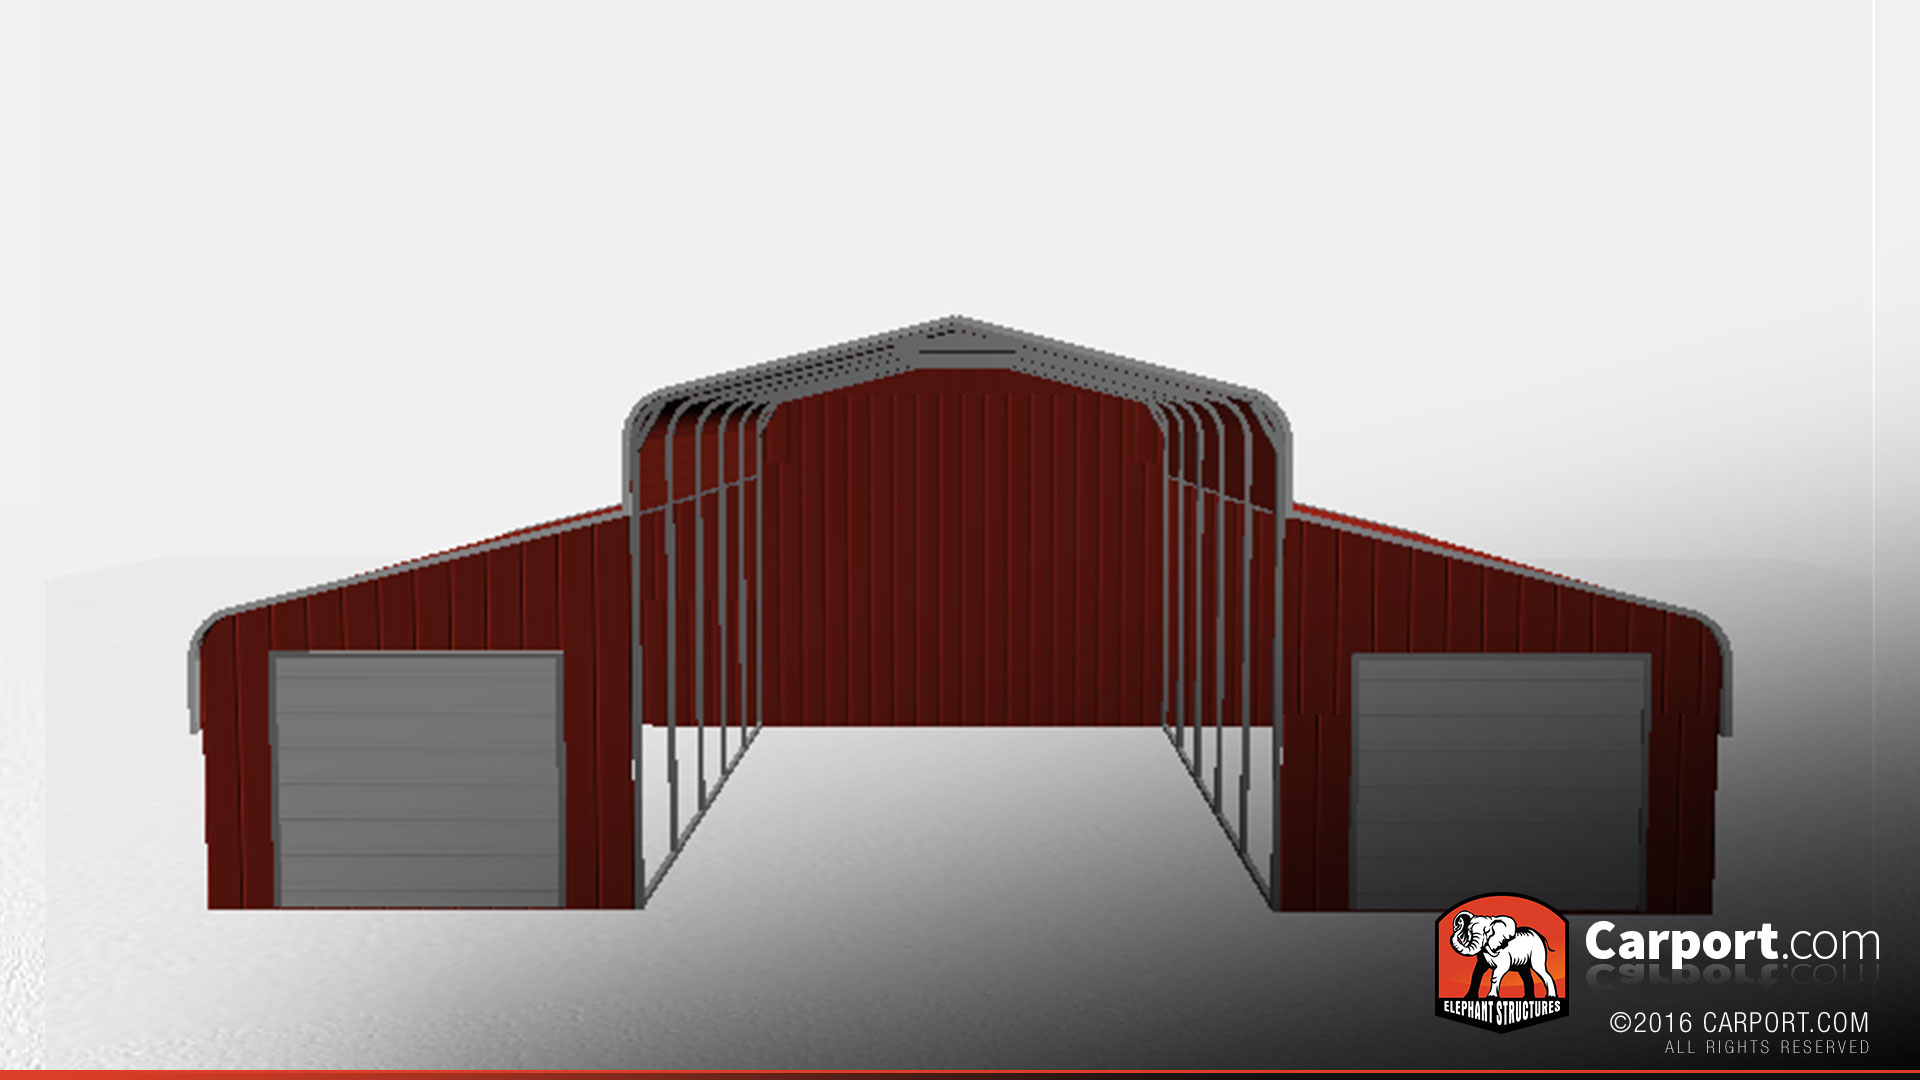 Partially Enclosed Horse Barn With Two Garage Doors